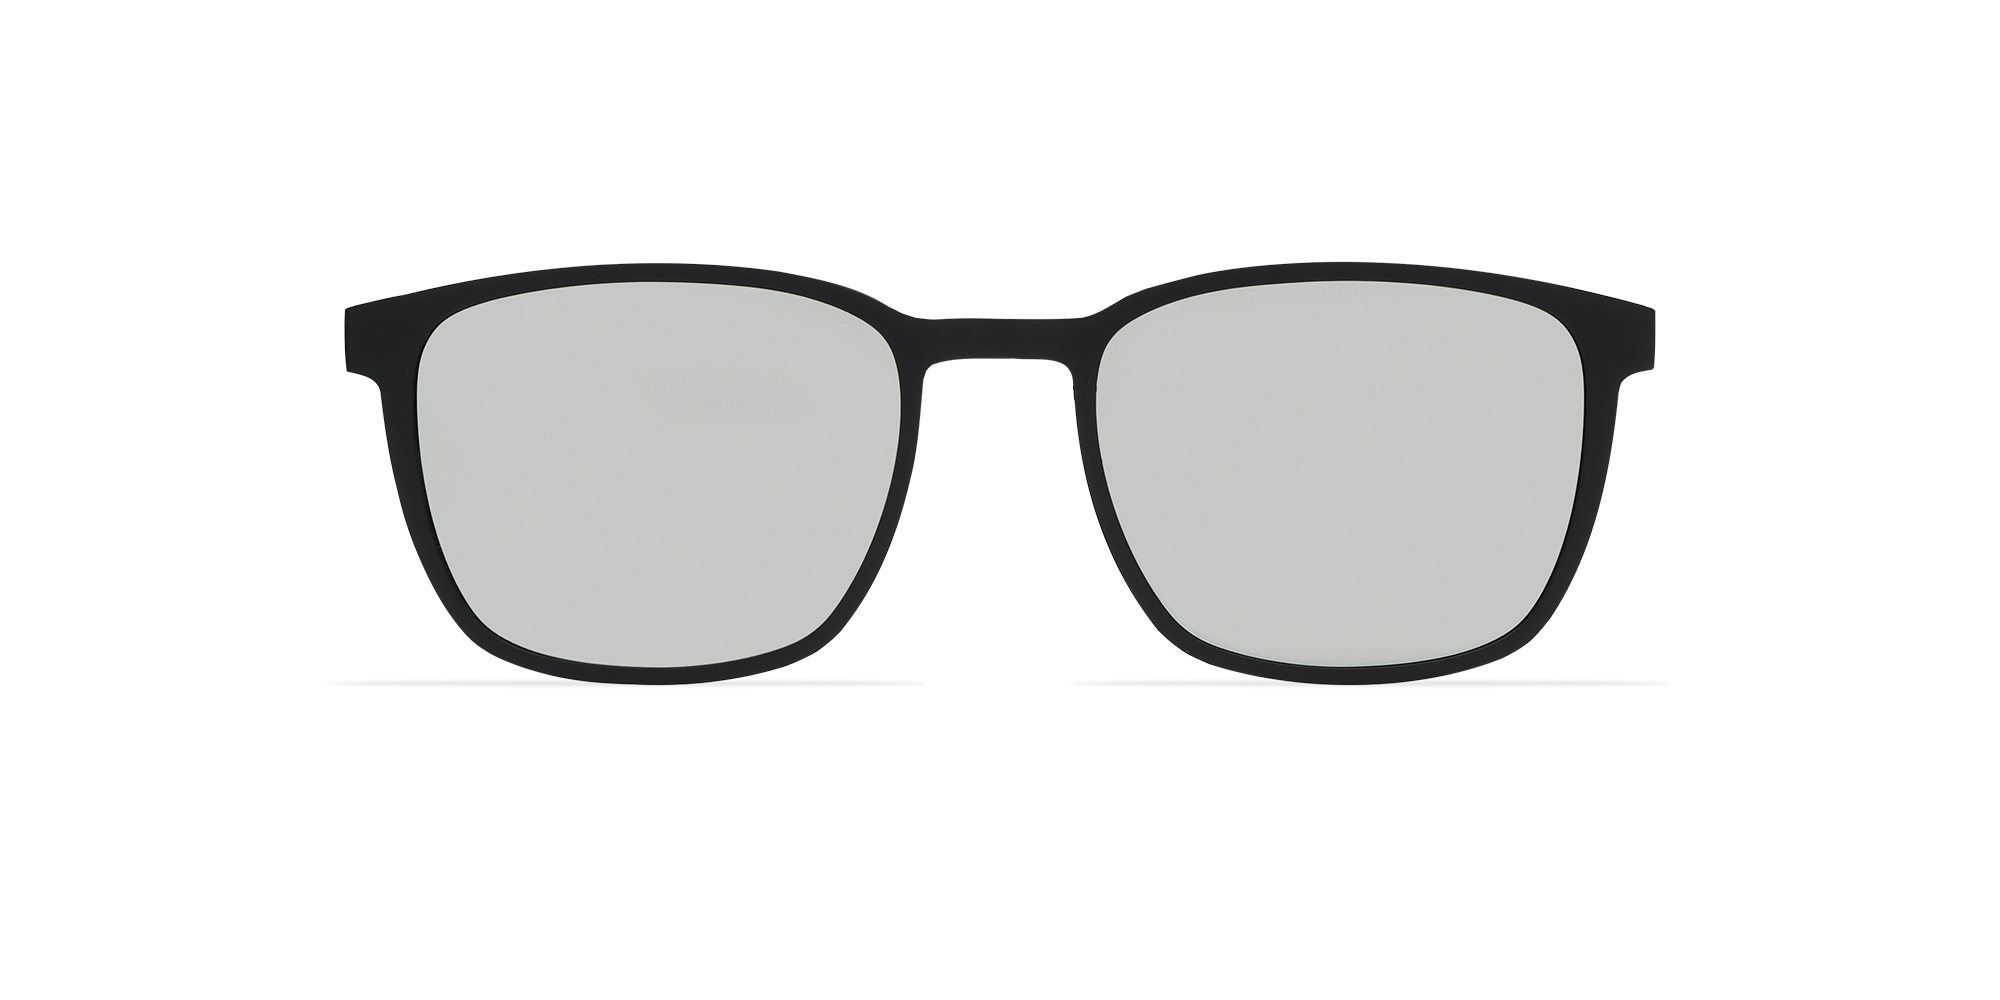 afflelou/france/products/smart_clip/clips_glasses/TMK42R3BK015319.png